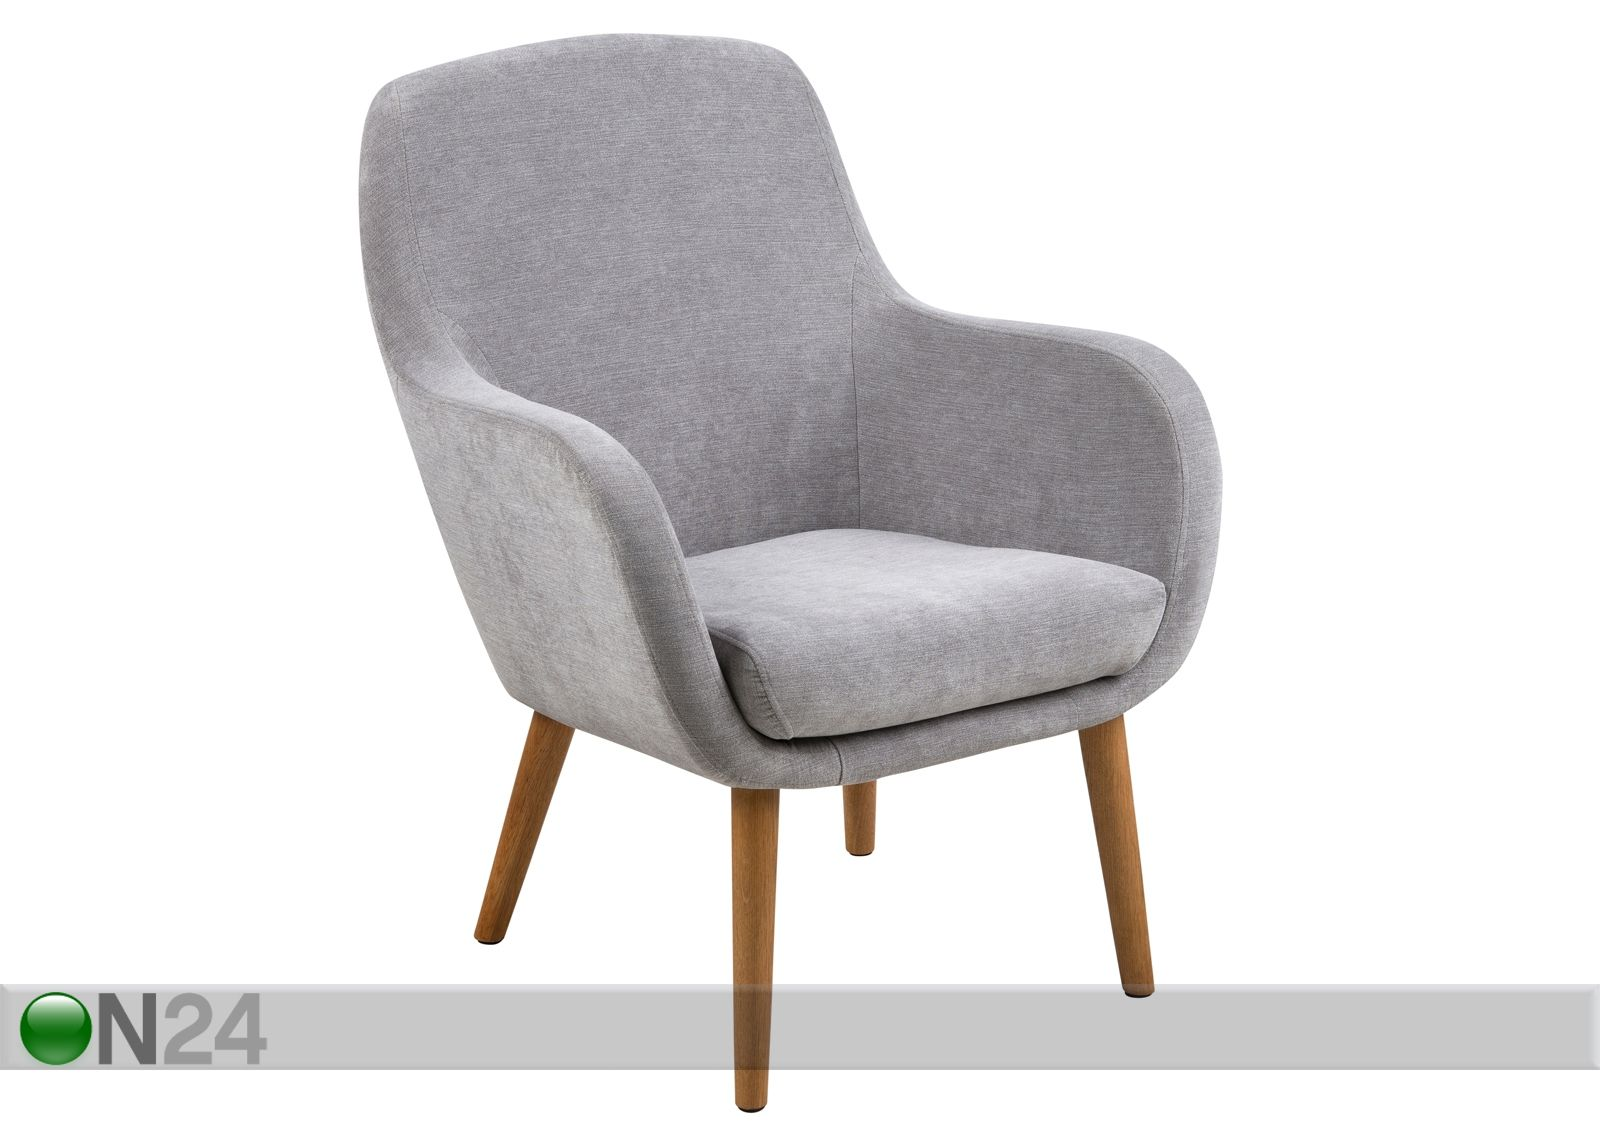 Tugitool Sally Armchair, Chair, Accent chairs